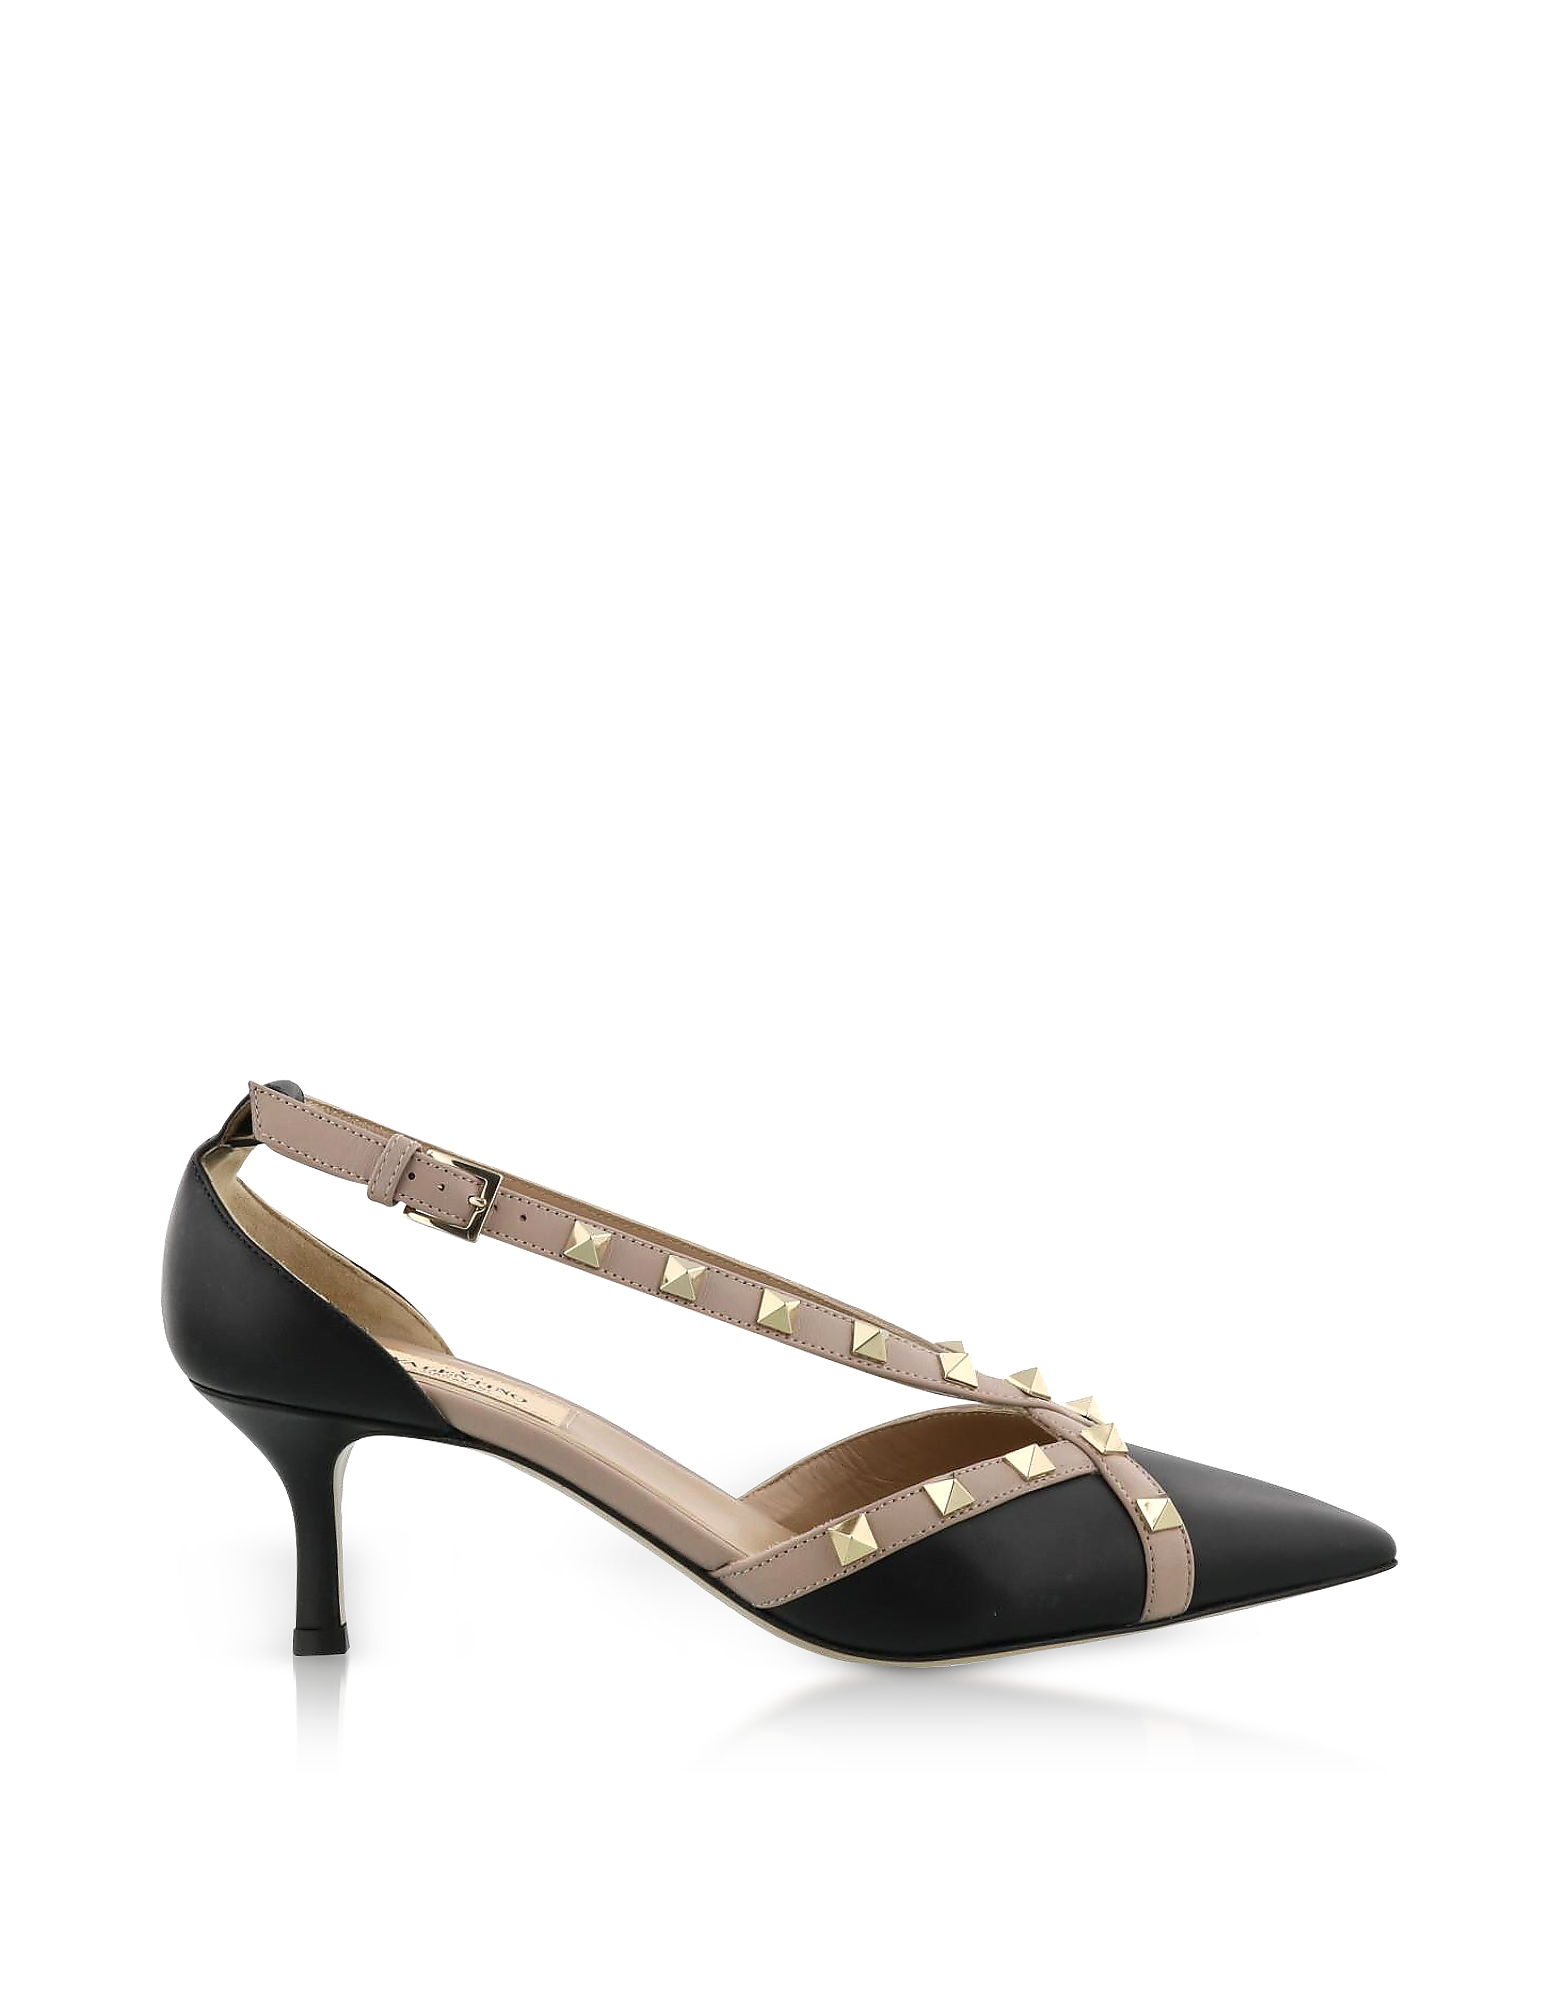 Valentino Shoes, Rockstud d'Orsay Black Leather Mid Heel Pumps